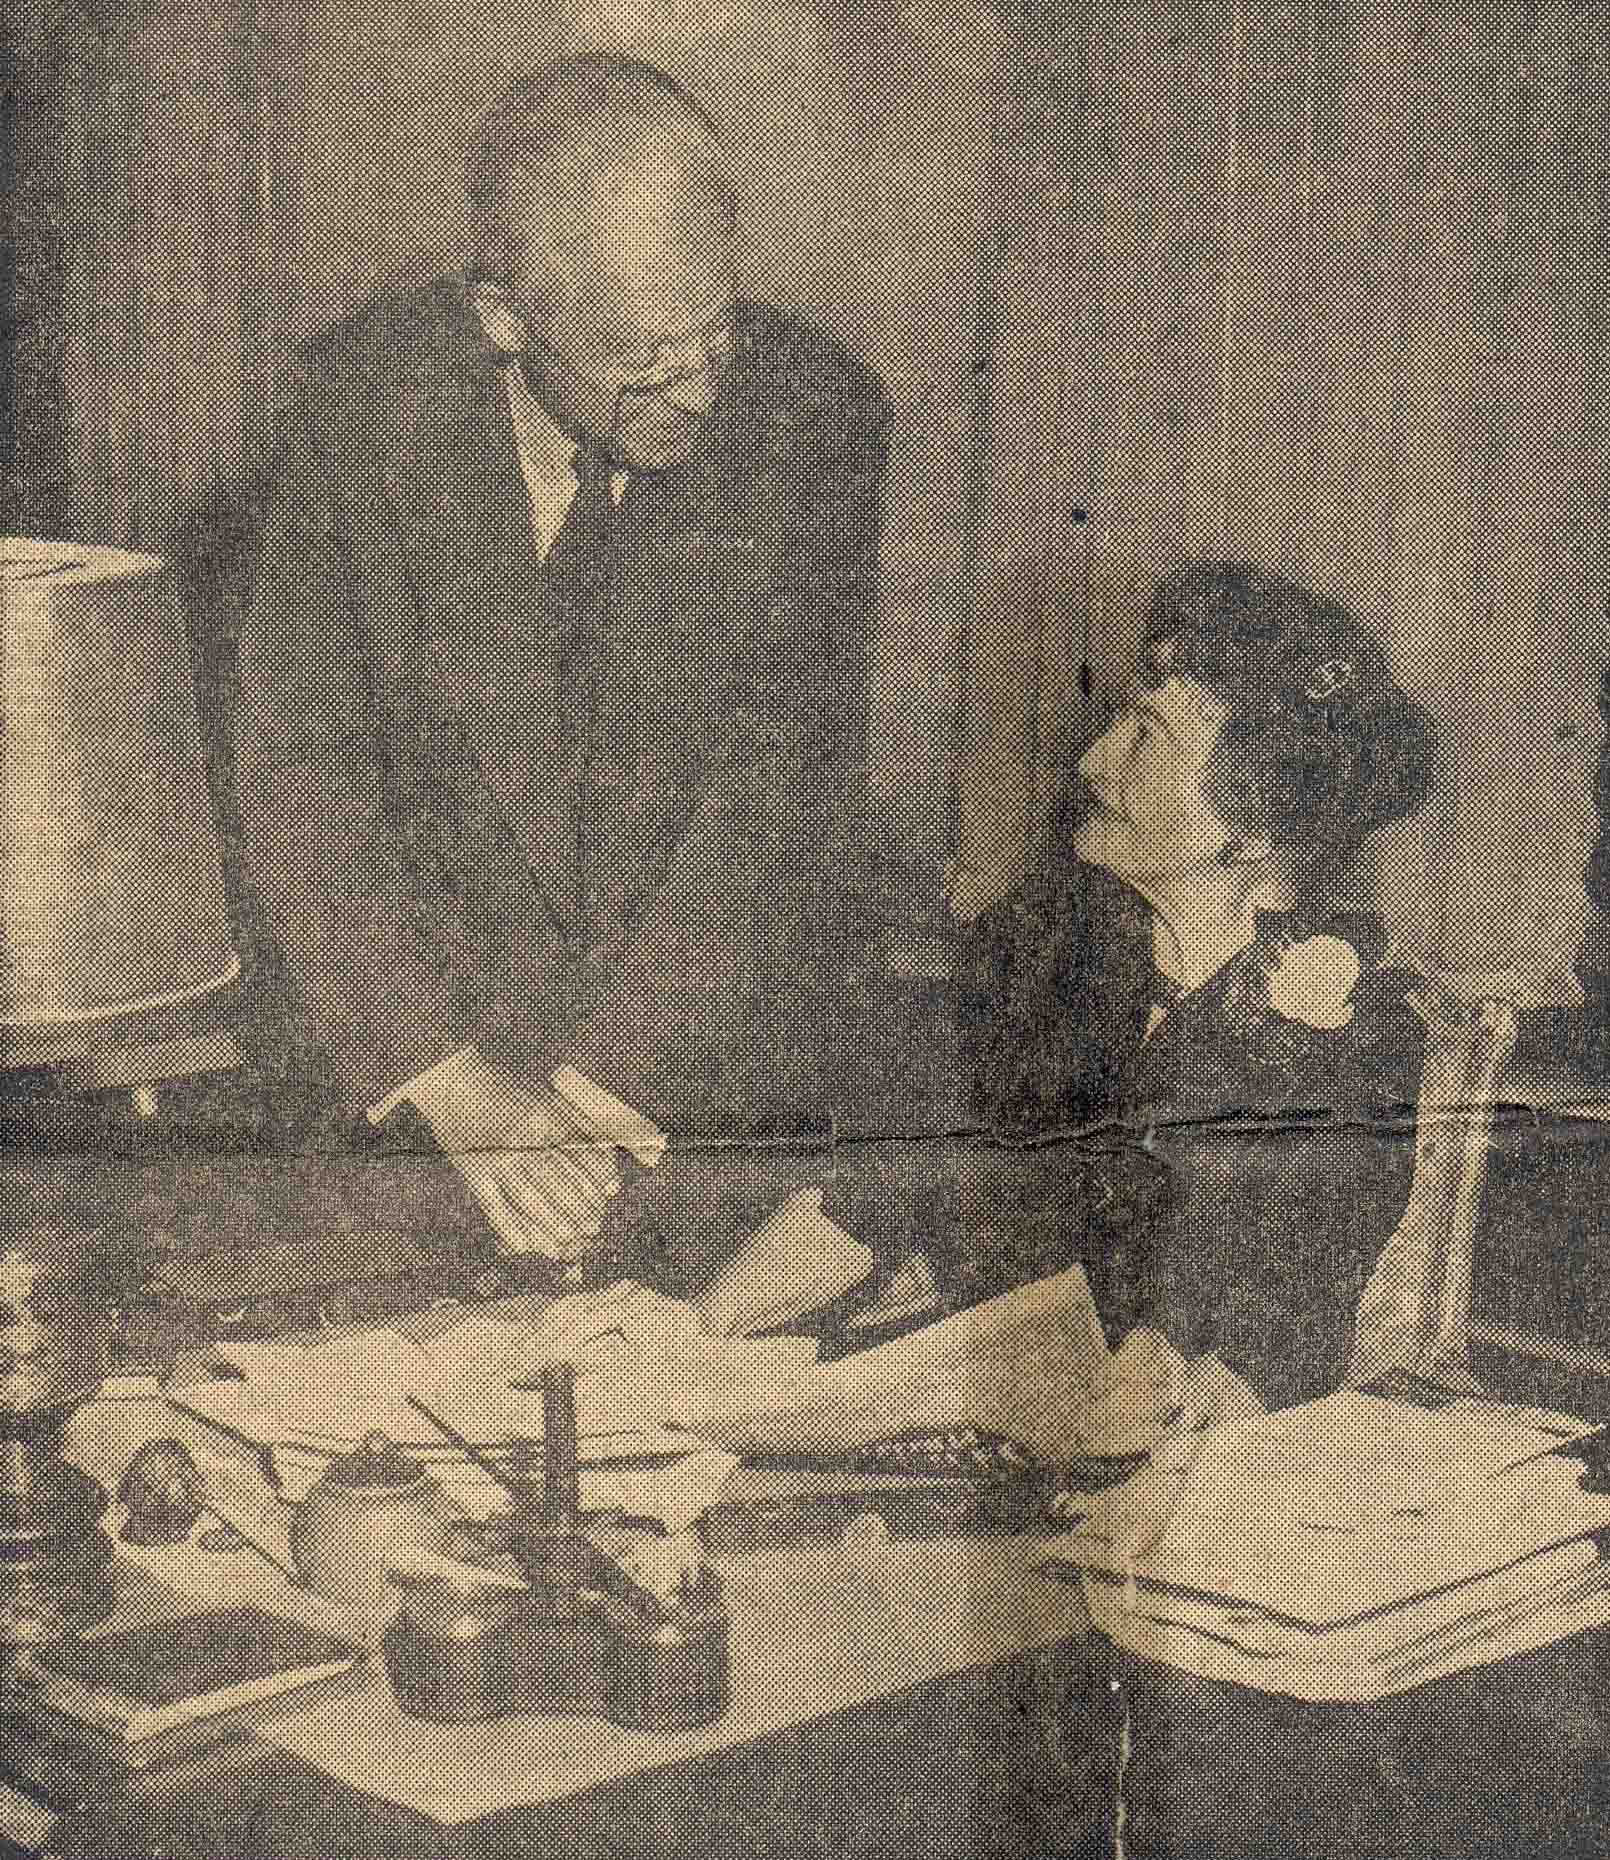 Mildred and Robert Woods Bliss in the Founders Room, 1956 (Sunday Star, March 2, 1956)